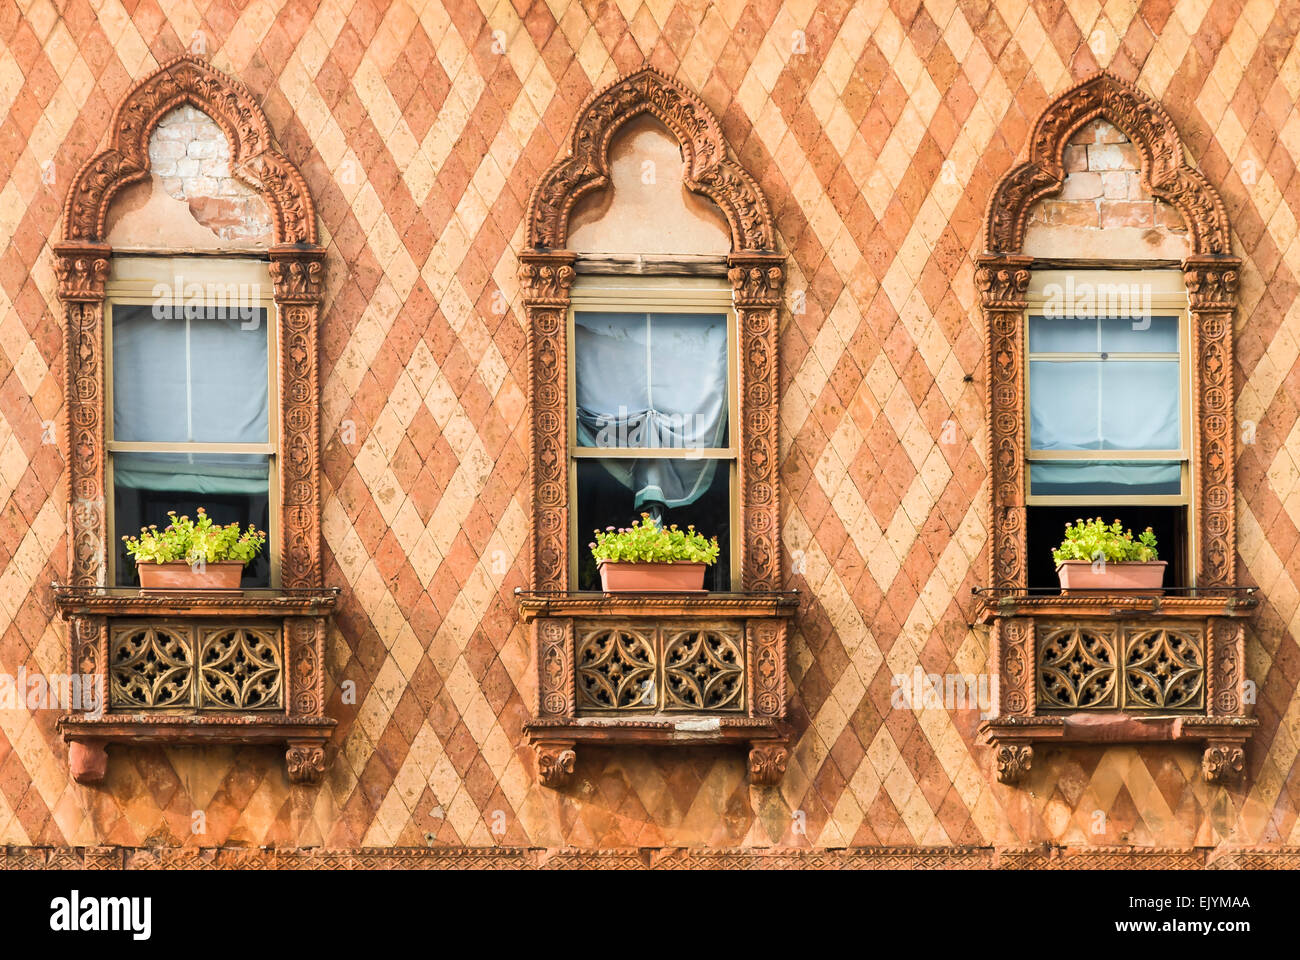 A trio of decorative Venetian windows surrounded by ornate brickwork - Stock Image